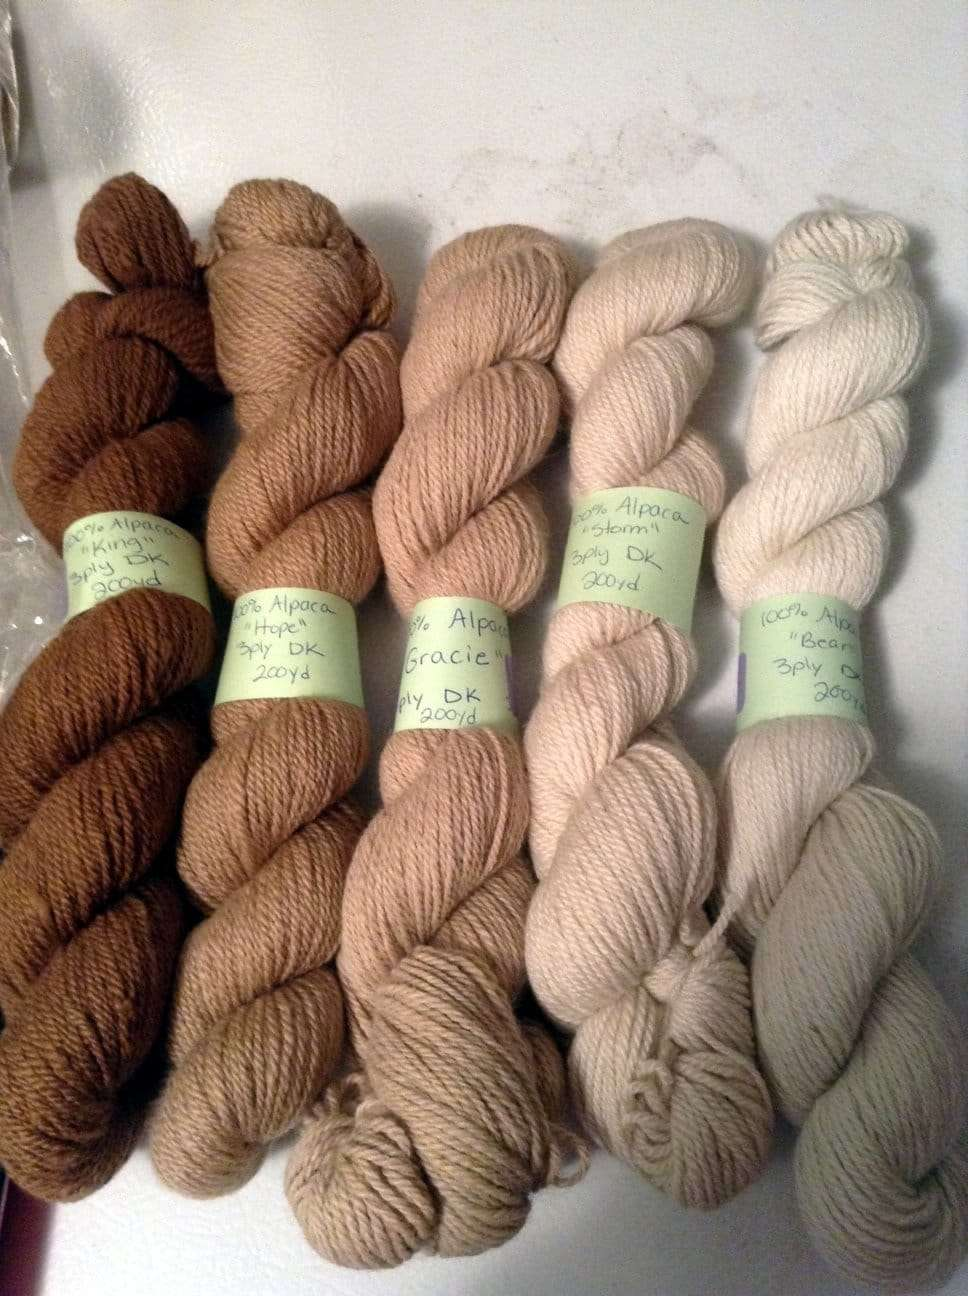 Blackberry Ridge Farm alpaca yarn - Wolcott, VT 05680